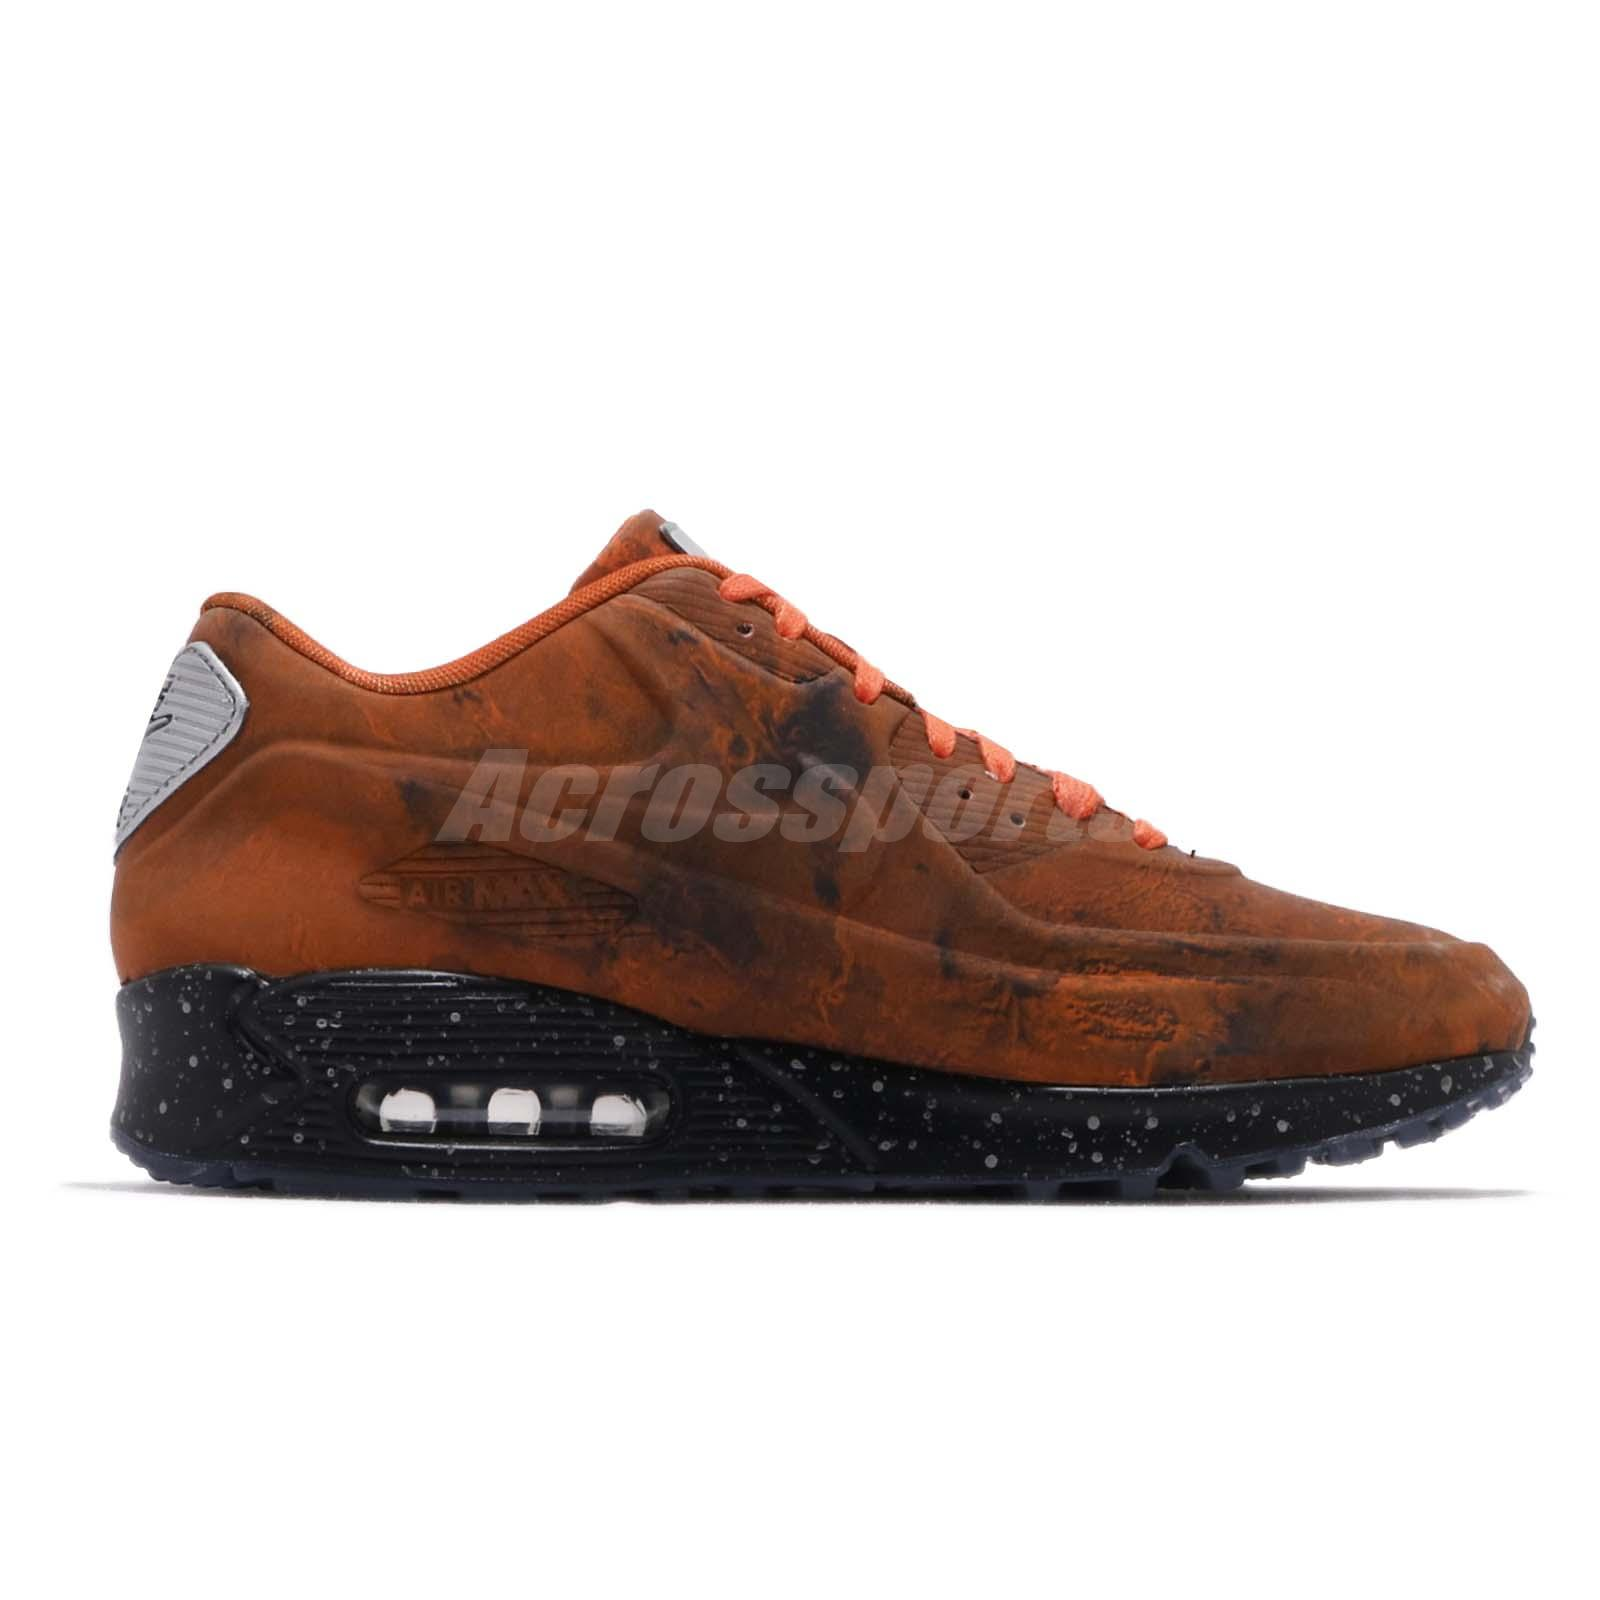 nike air max mars landing ebay - photo #18